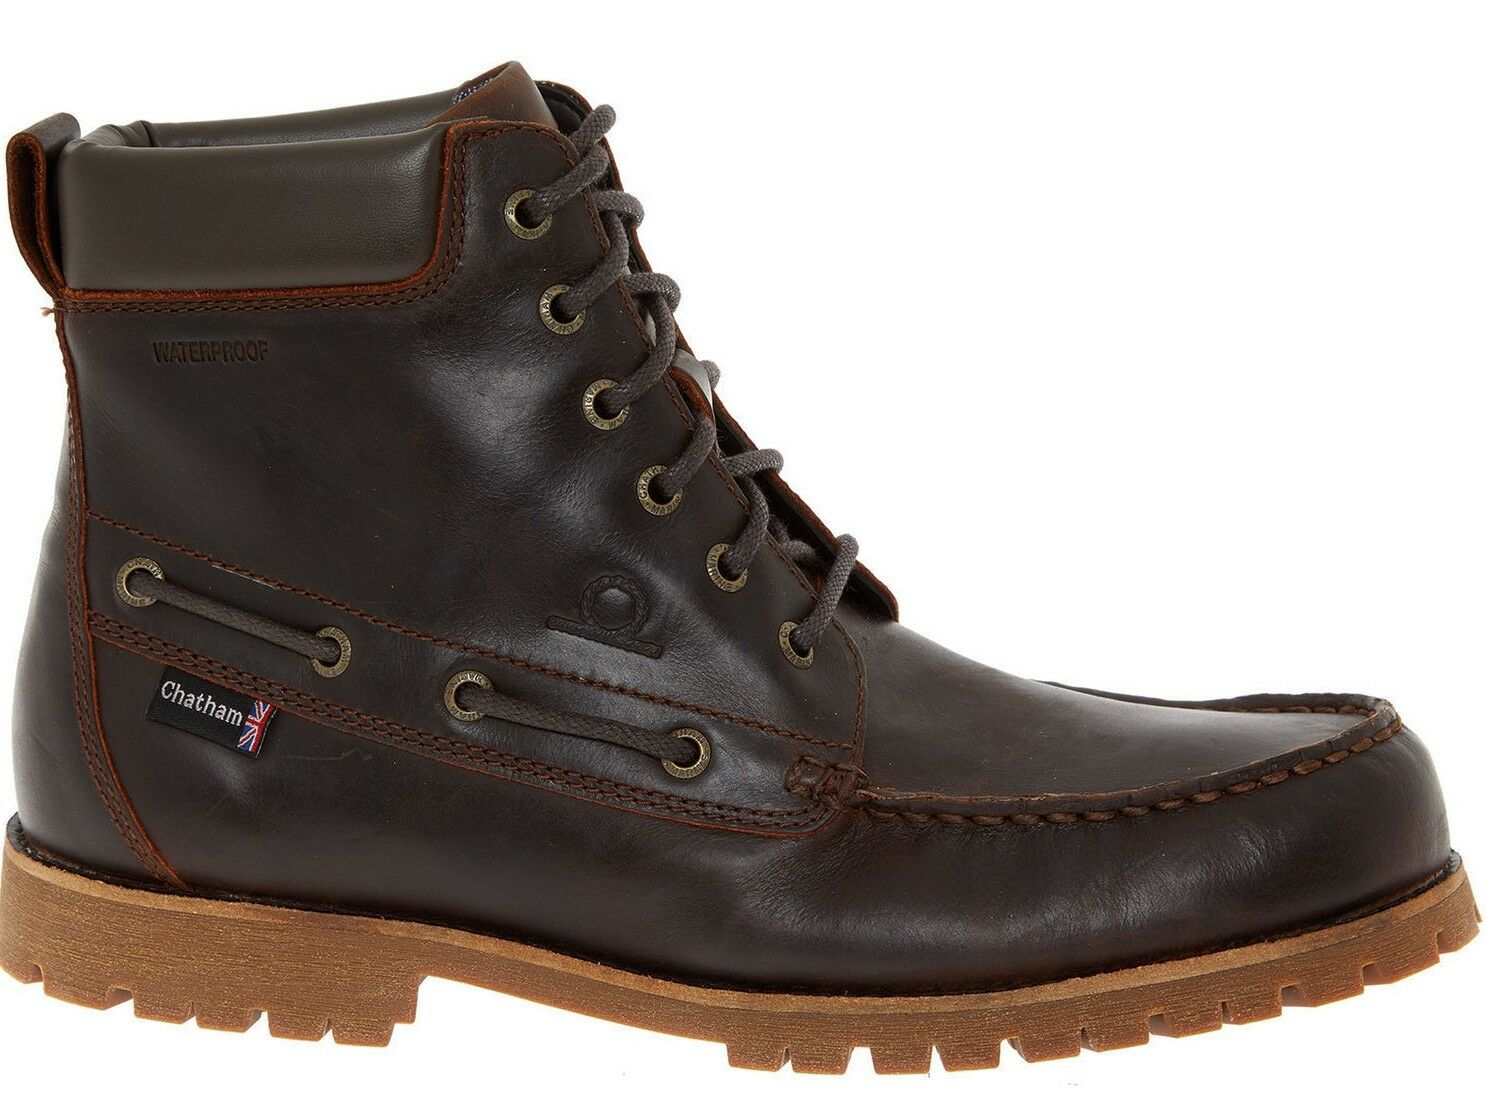 CHATHAM Bicton Mens Leather Tall Ankle Ankle Tall Boots, Dark Brown a49b32